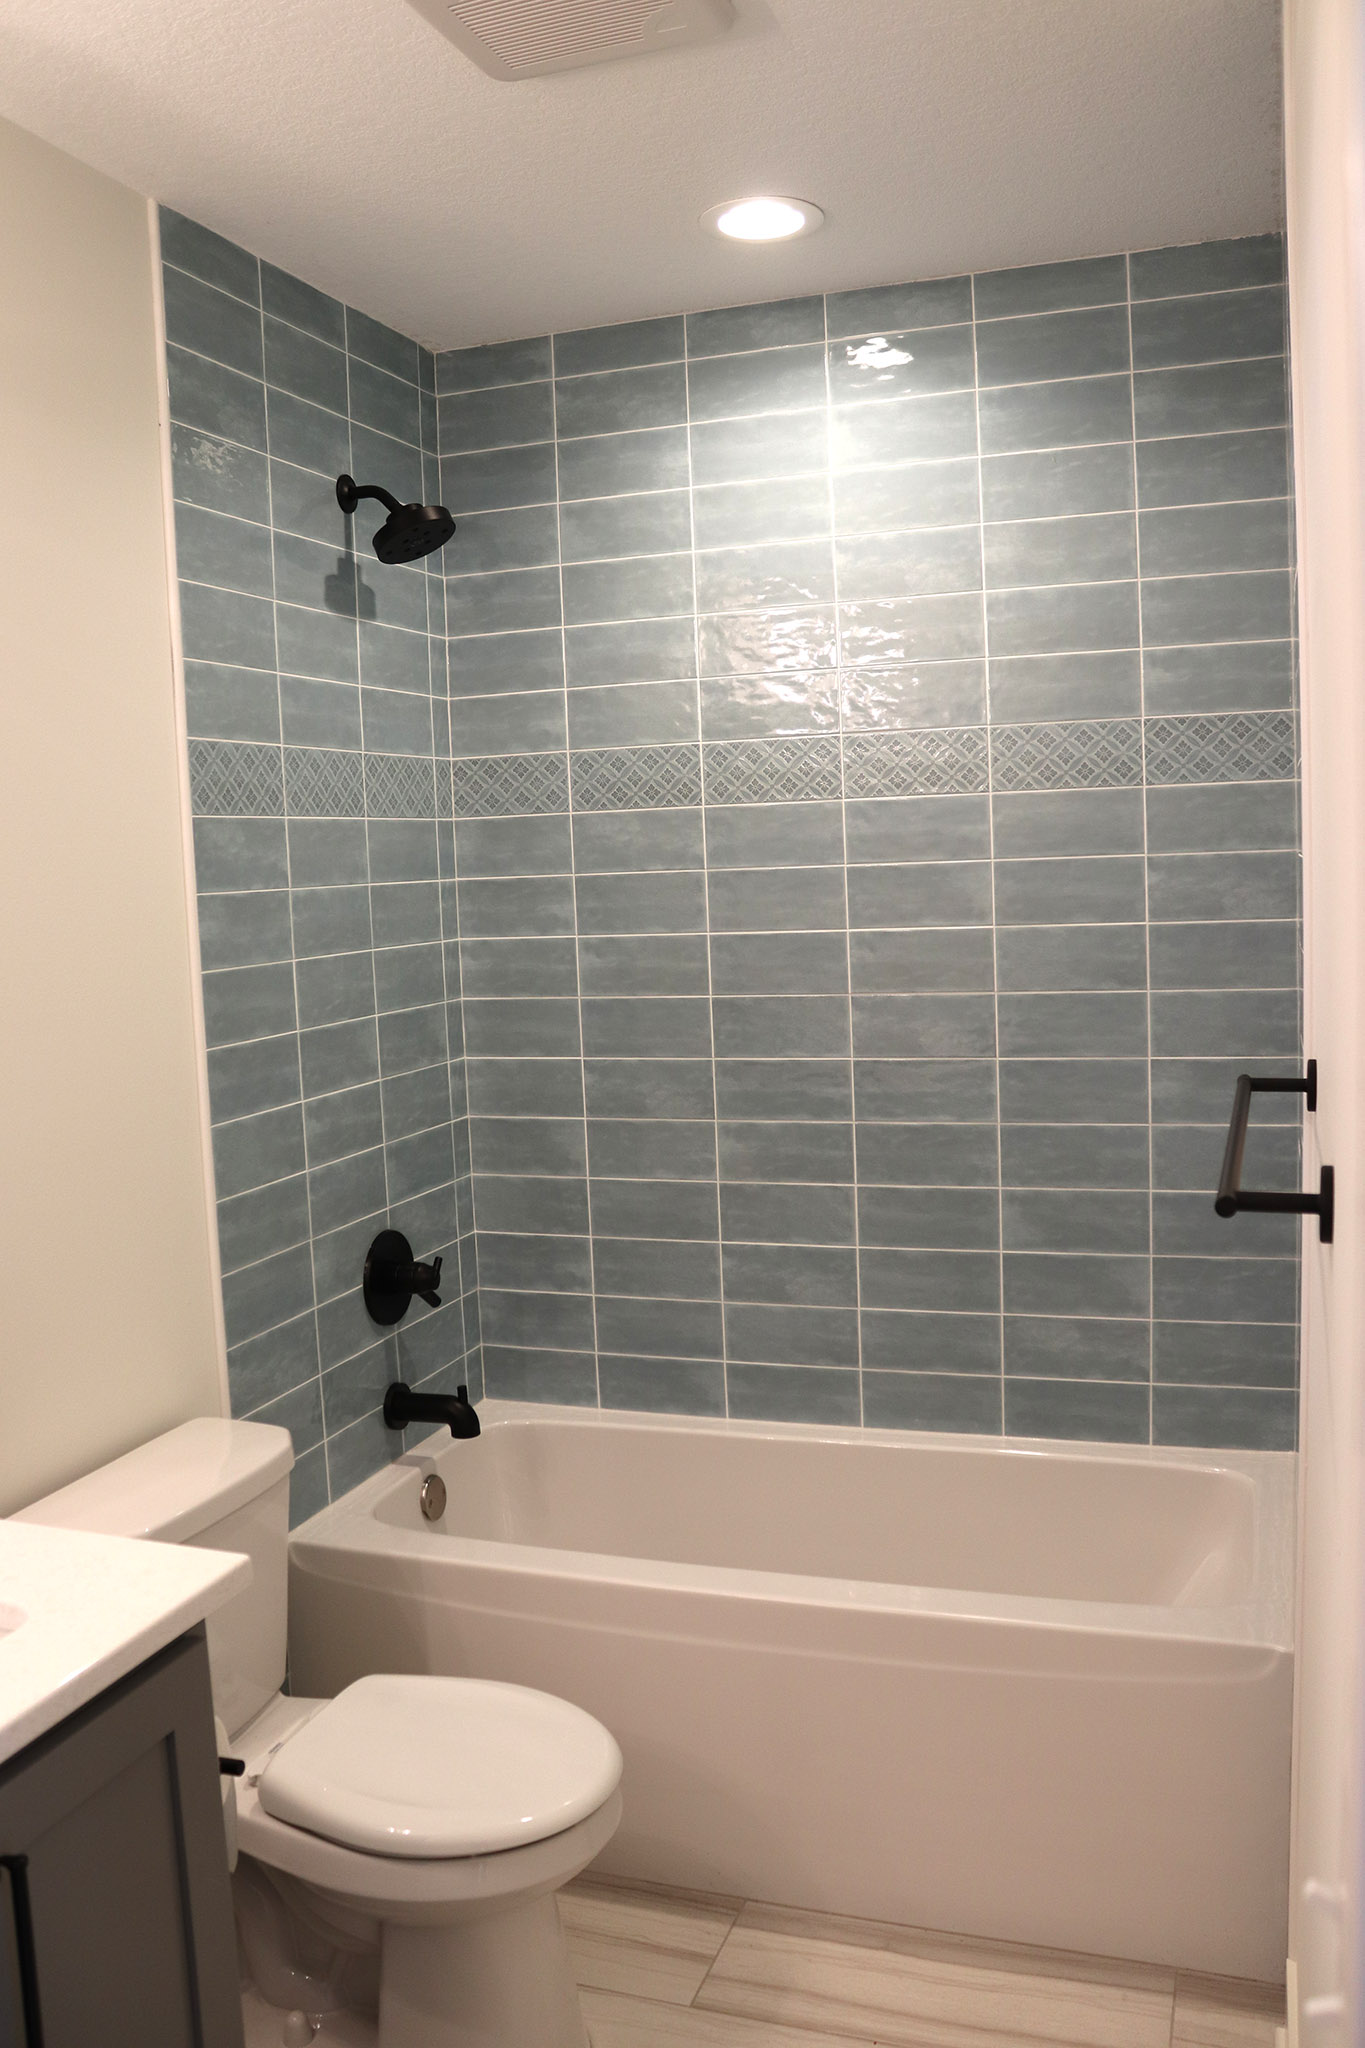 Kids bath with fiberglass tub, subway tile wall surround and accent border